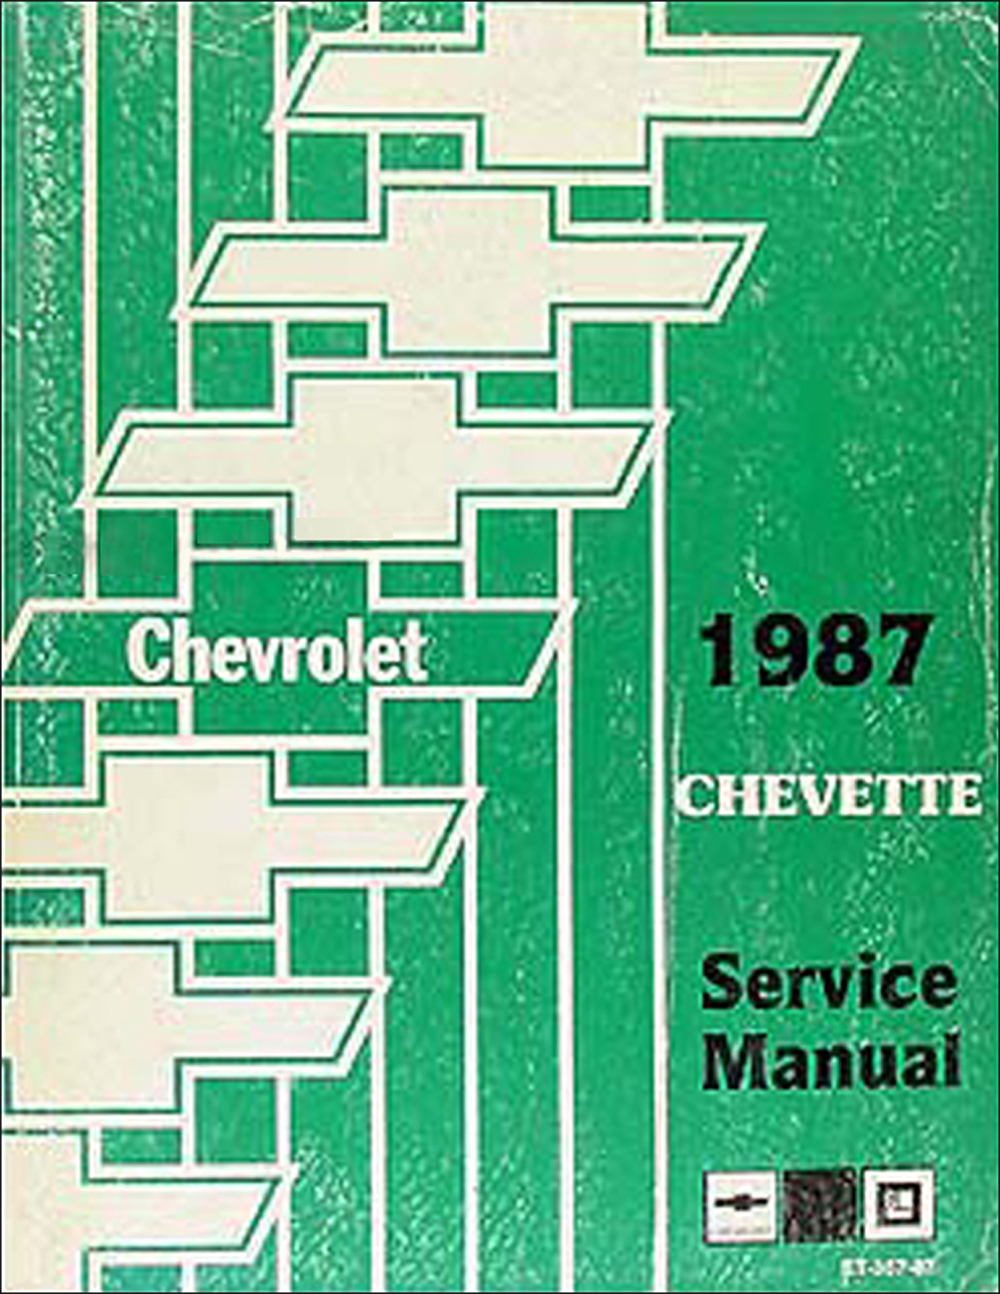 1987 Chevy Chevette Repair Manual Original